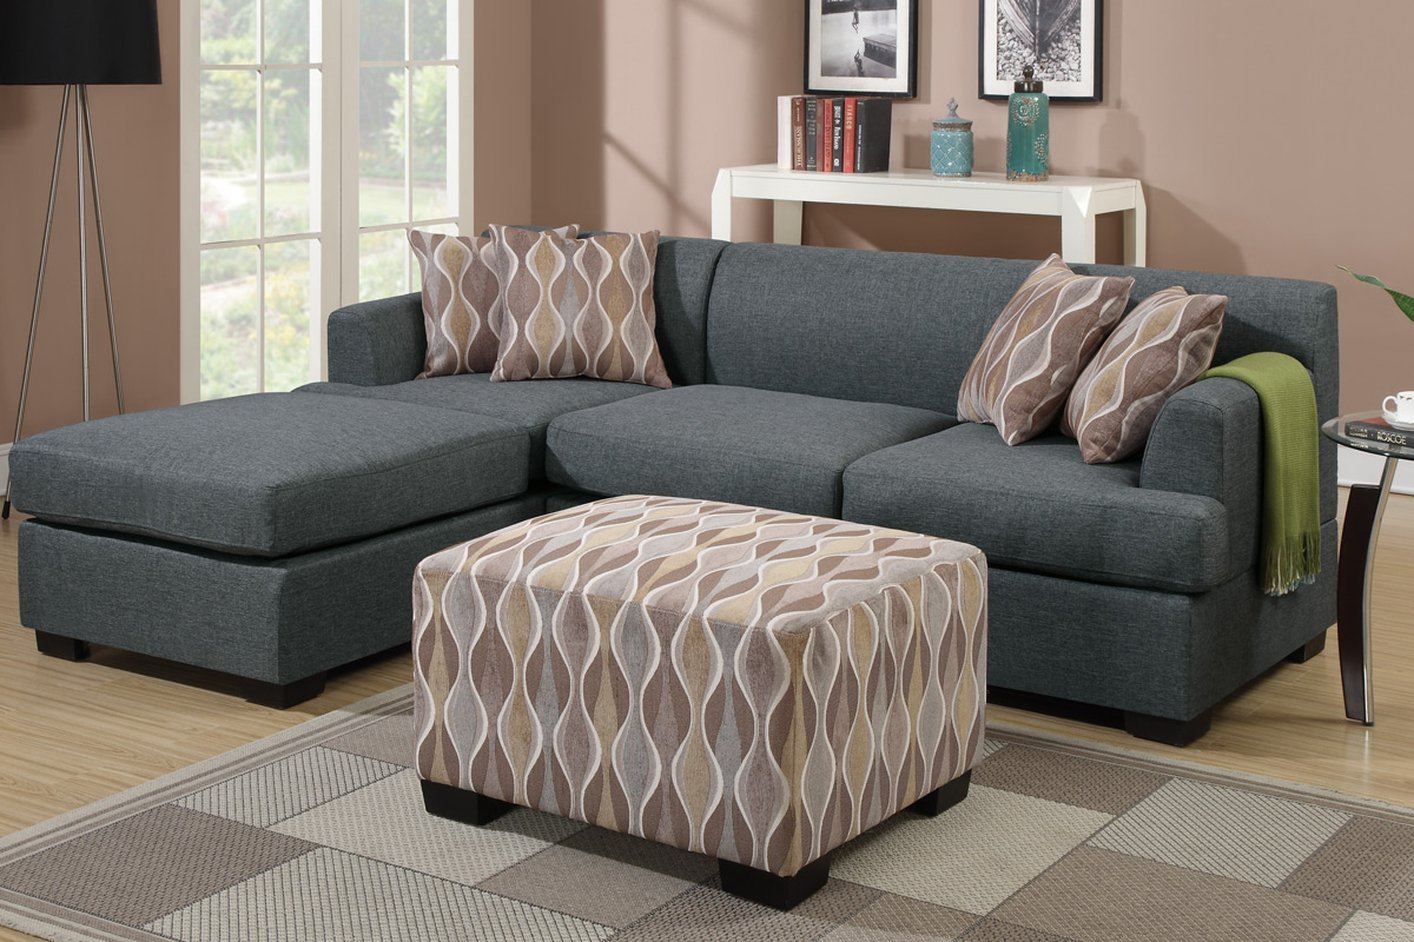 Lounge Couch Company Grey Fabric Chaise Lounge Steal A Sofa Furniture Outlet